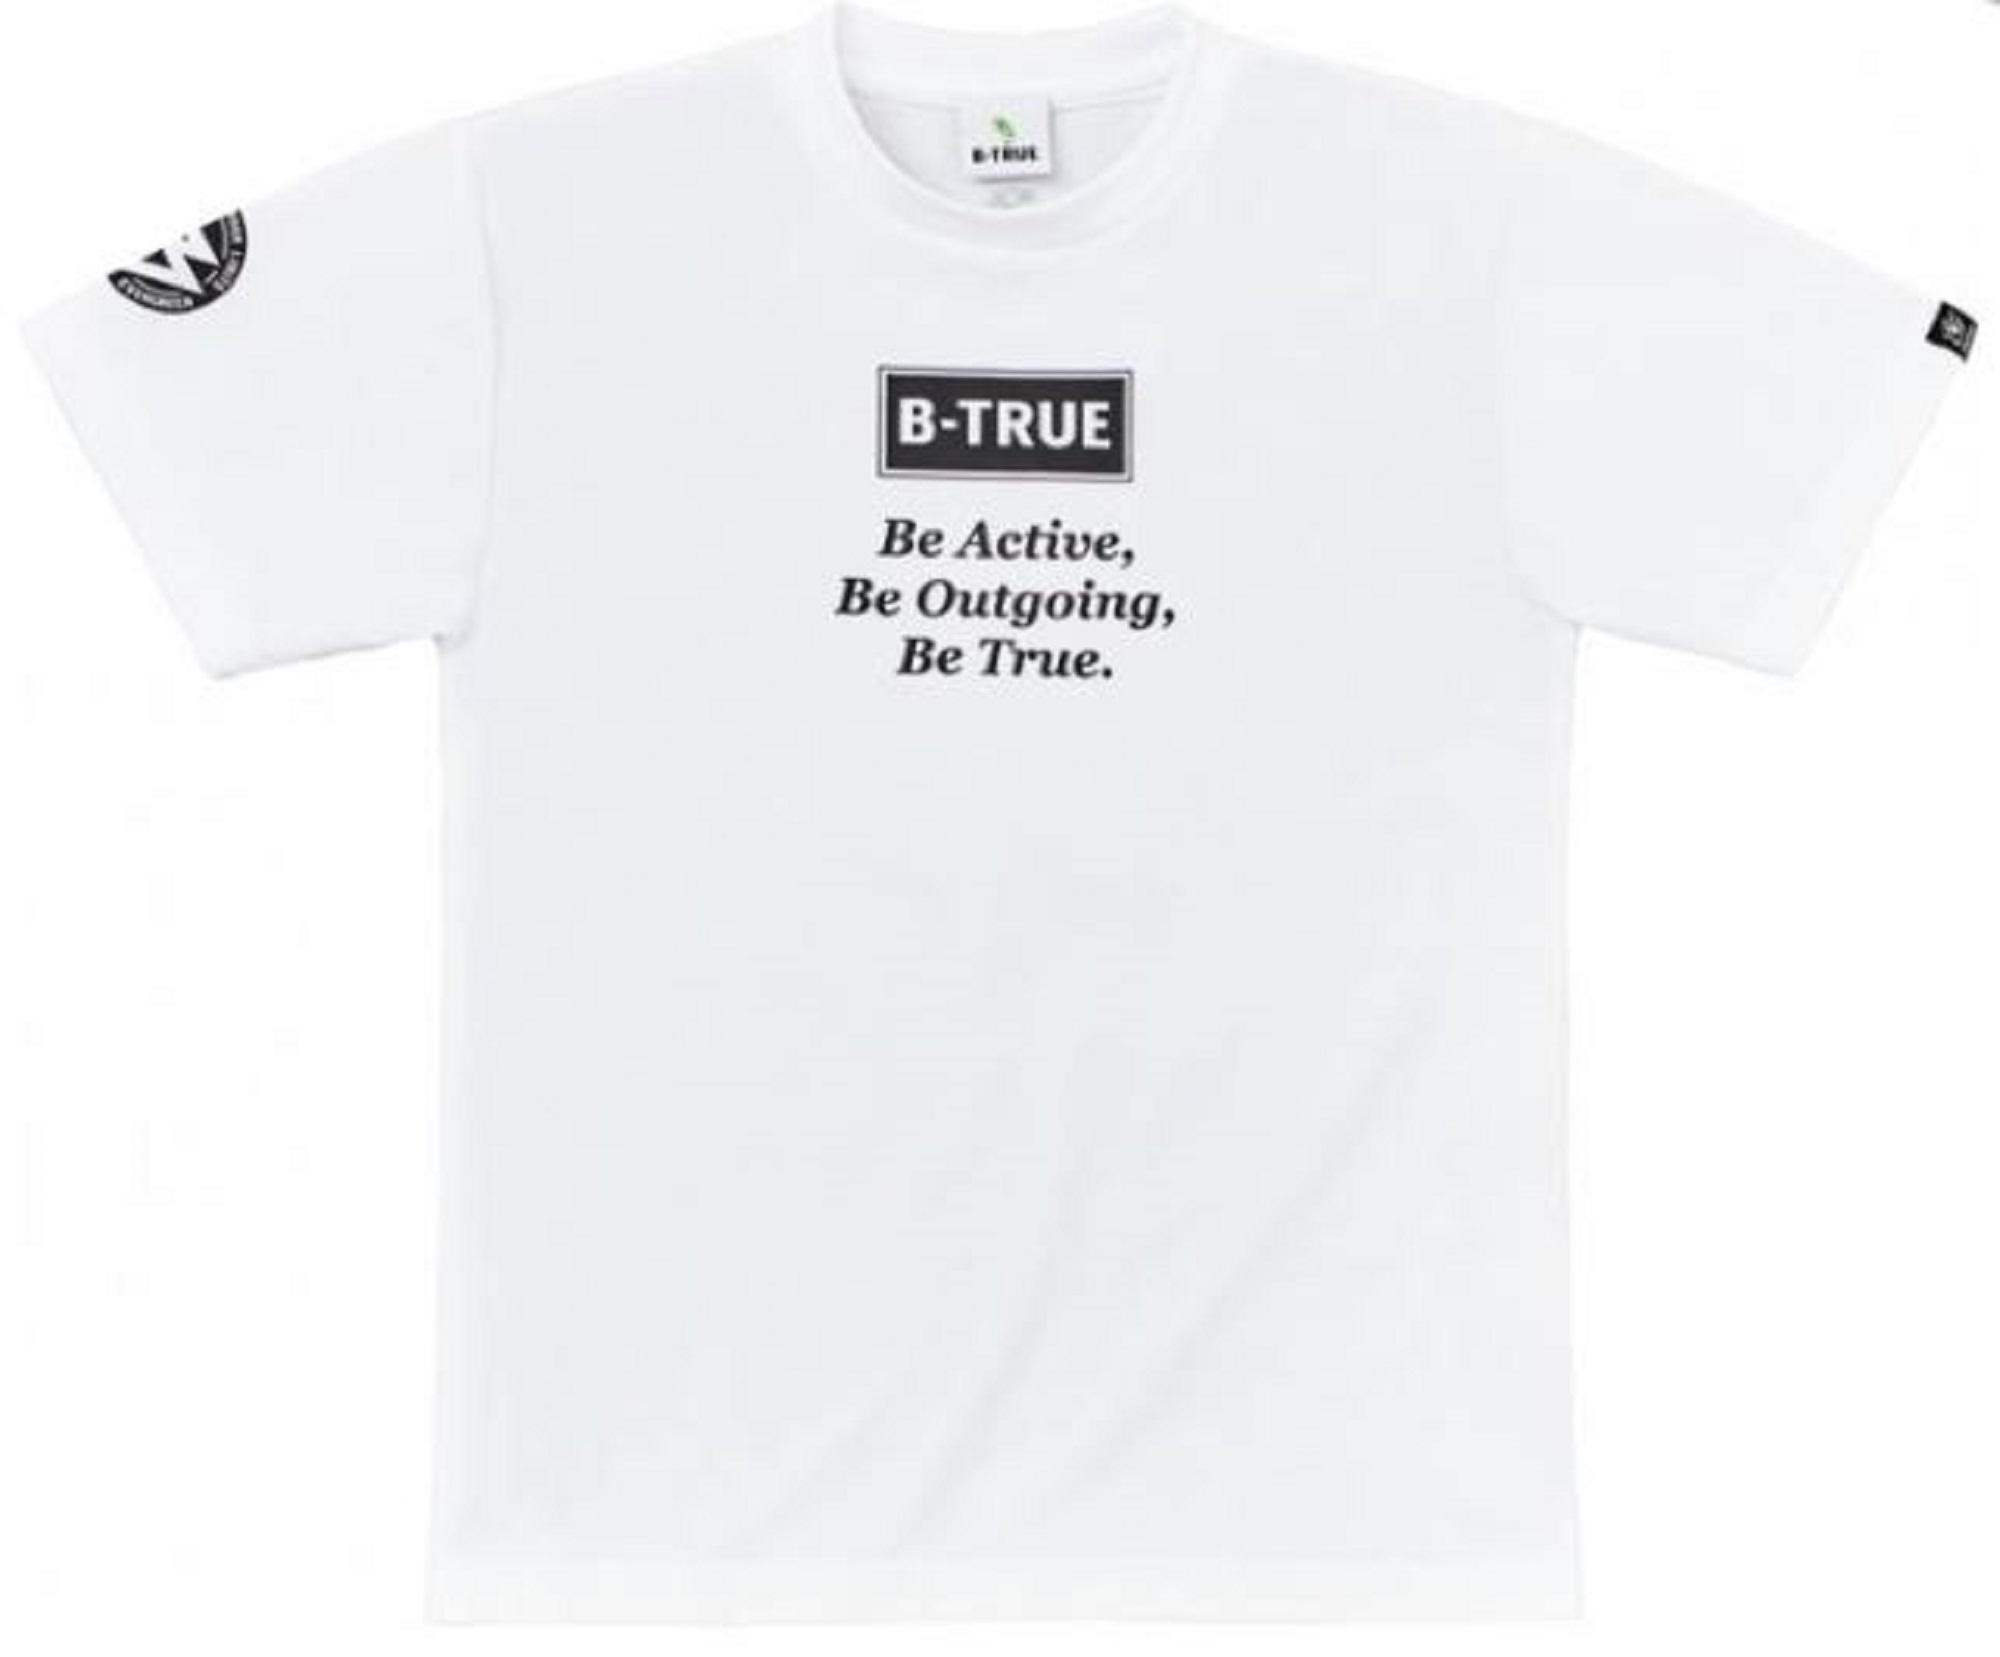 Evergreen T-Shirt Dry Fit Short Sleeve B-True D Type Size M White (4838)